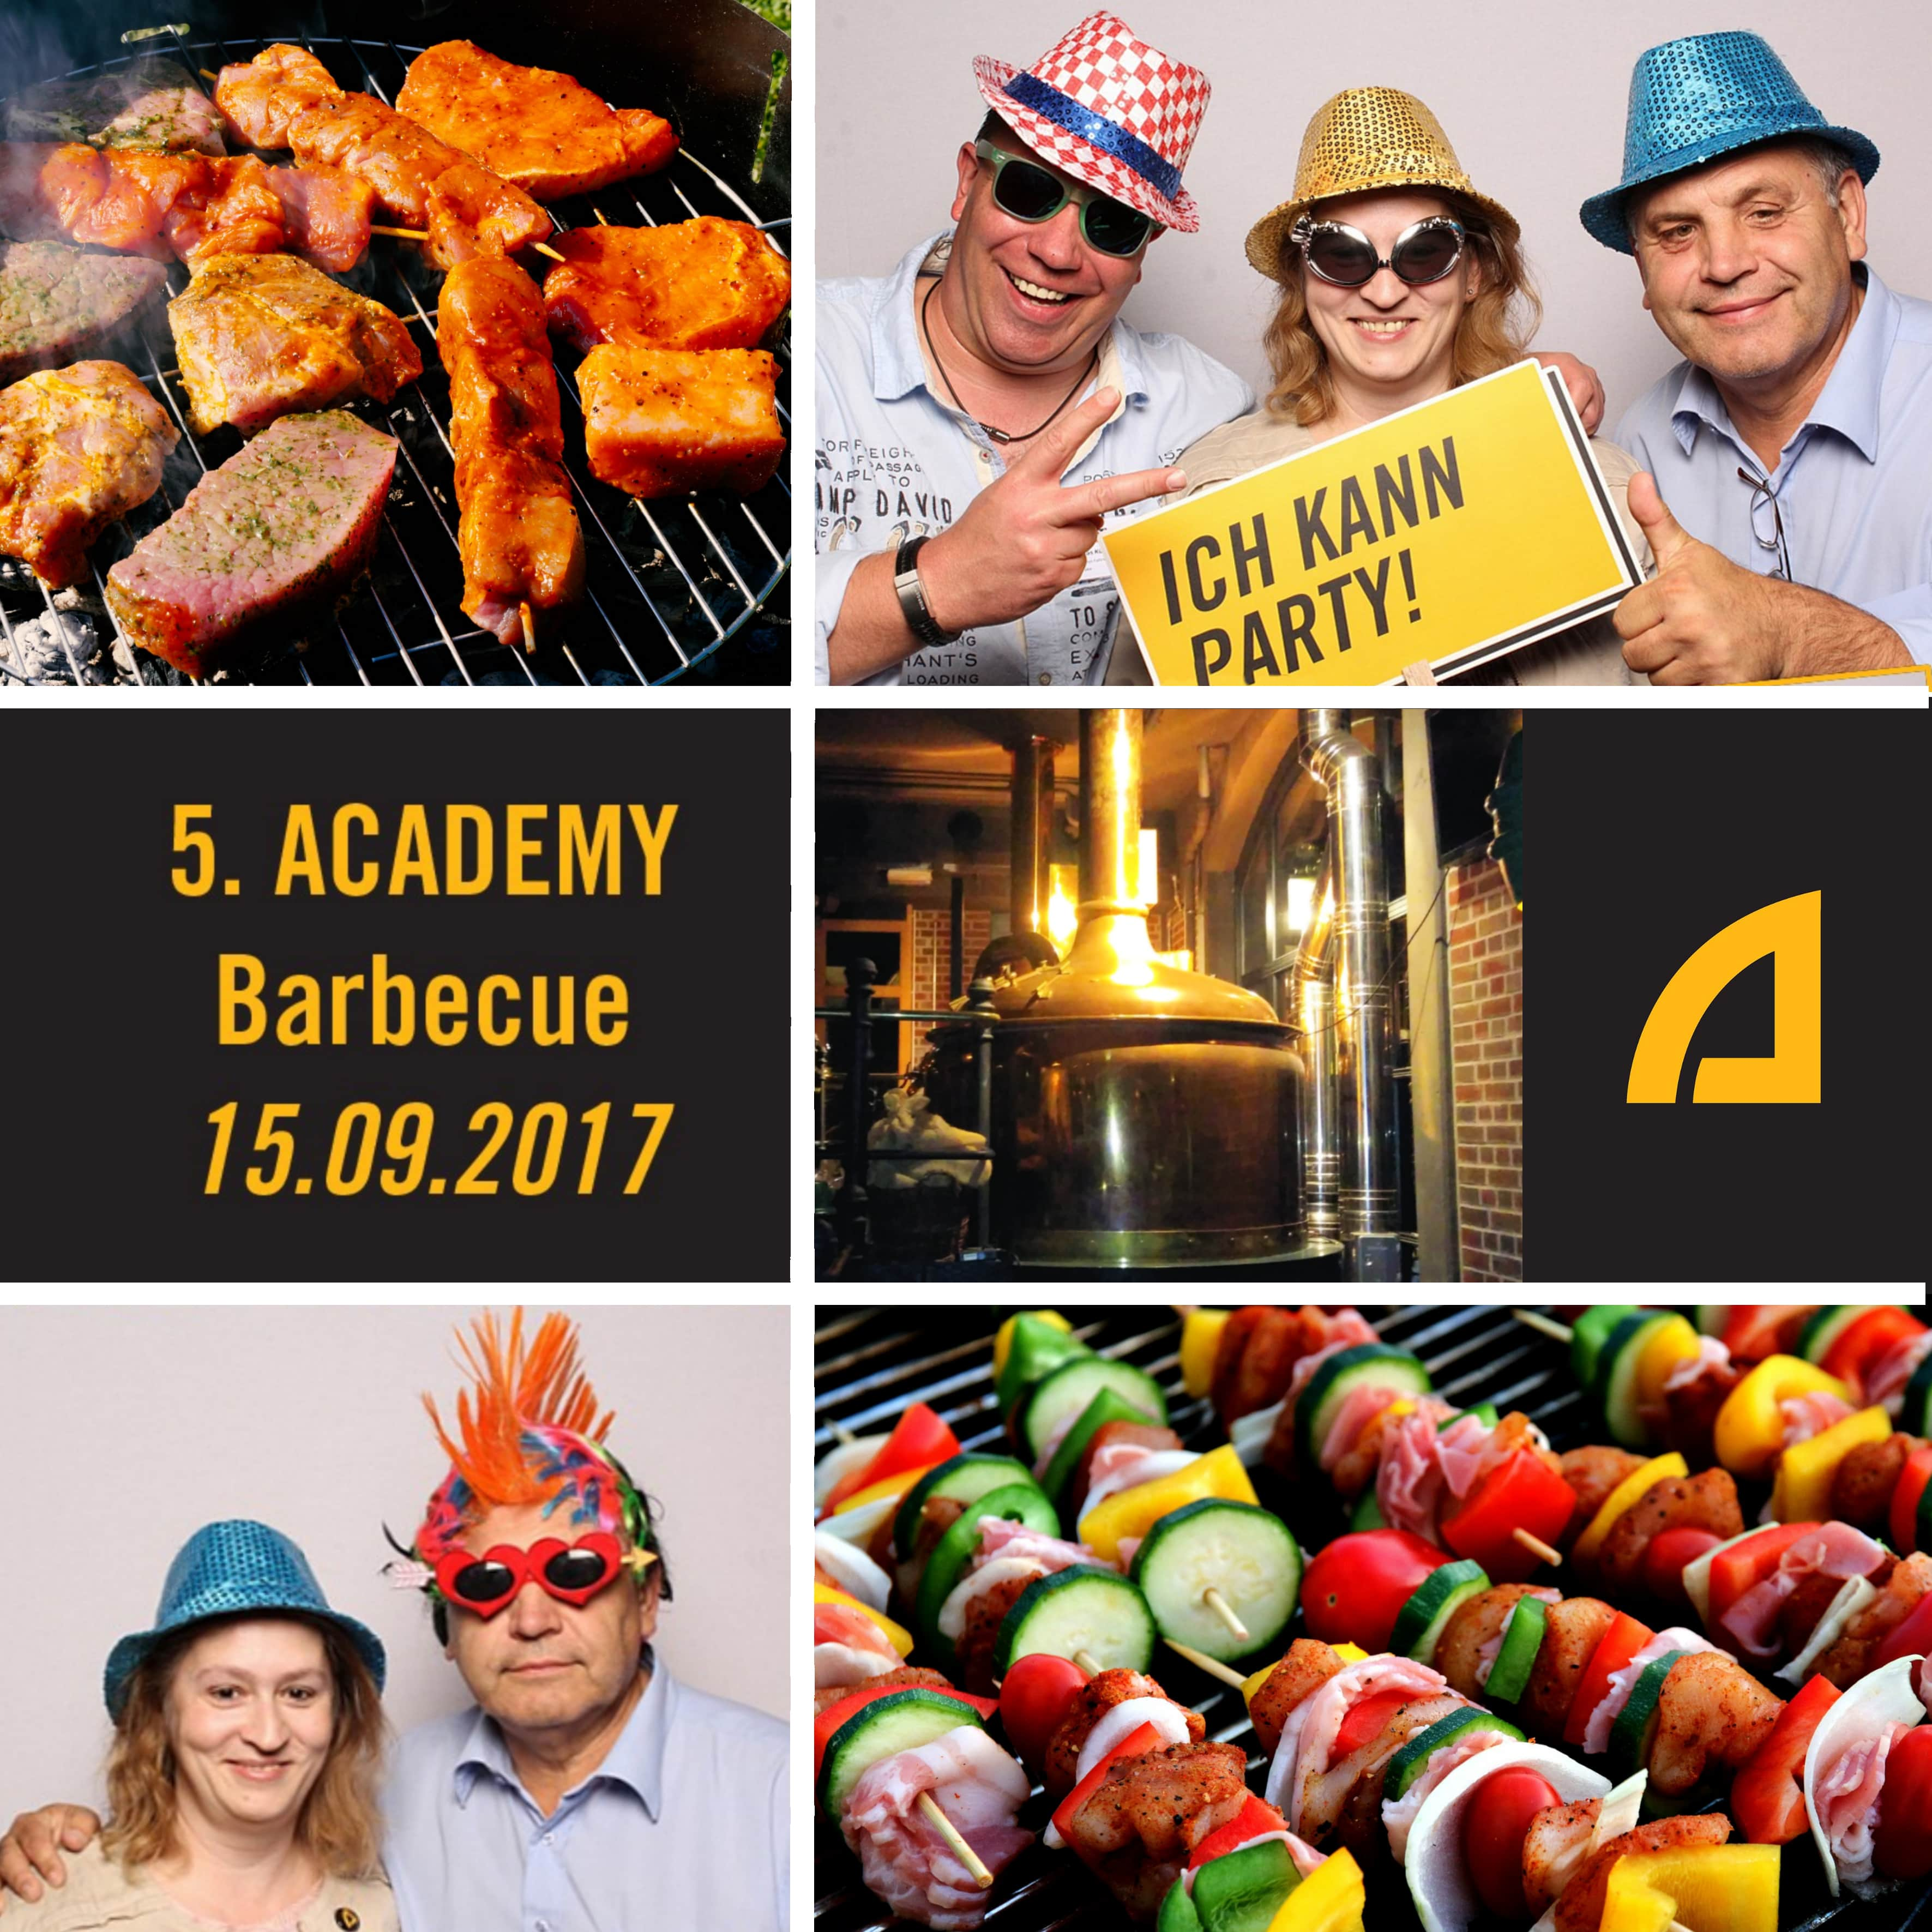 ACADEMY-Barbecue 2017